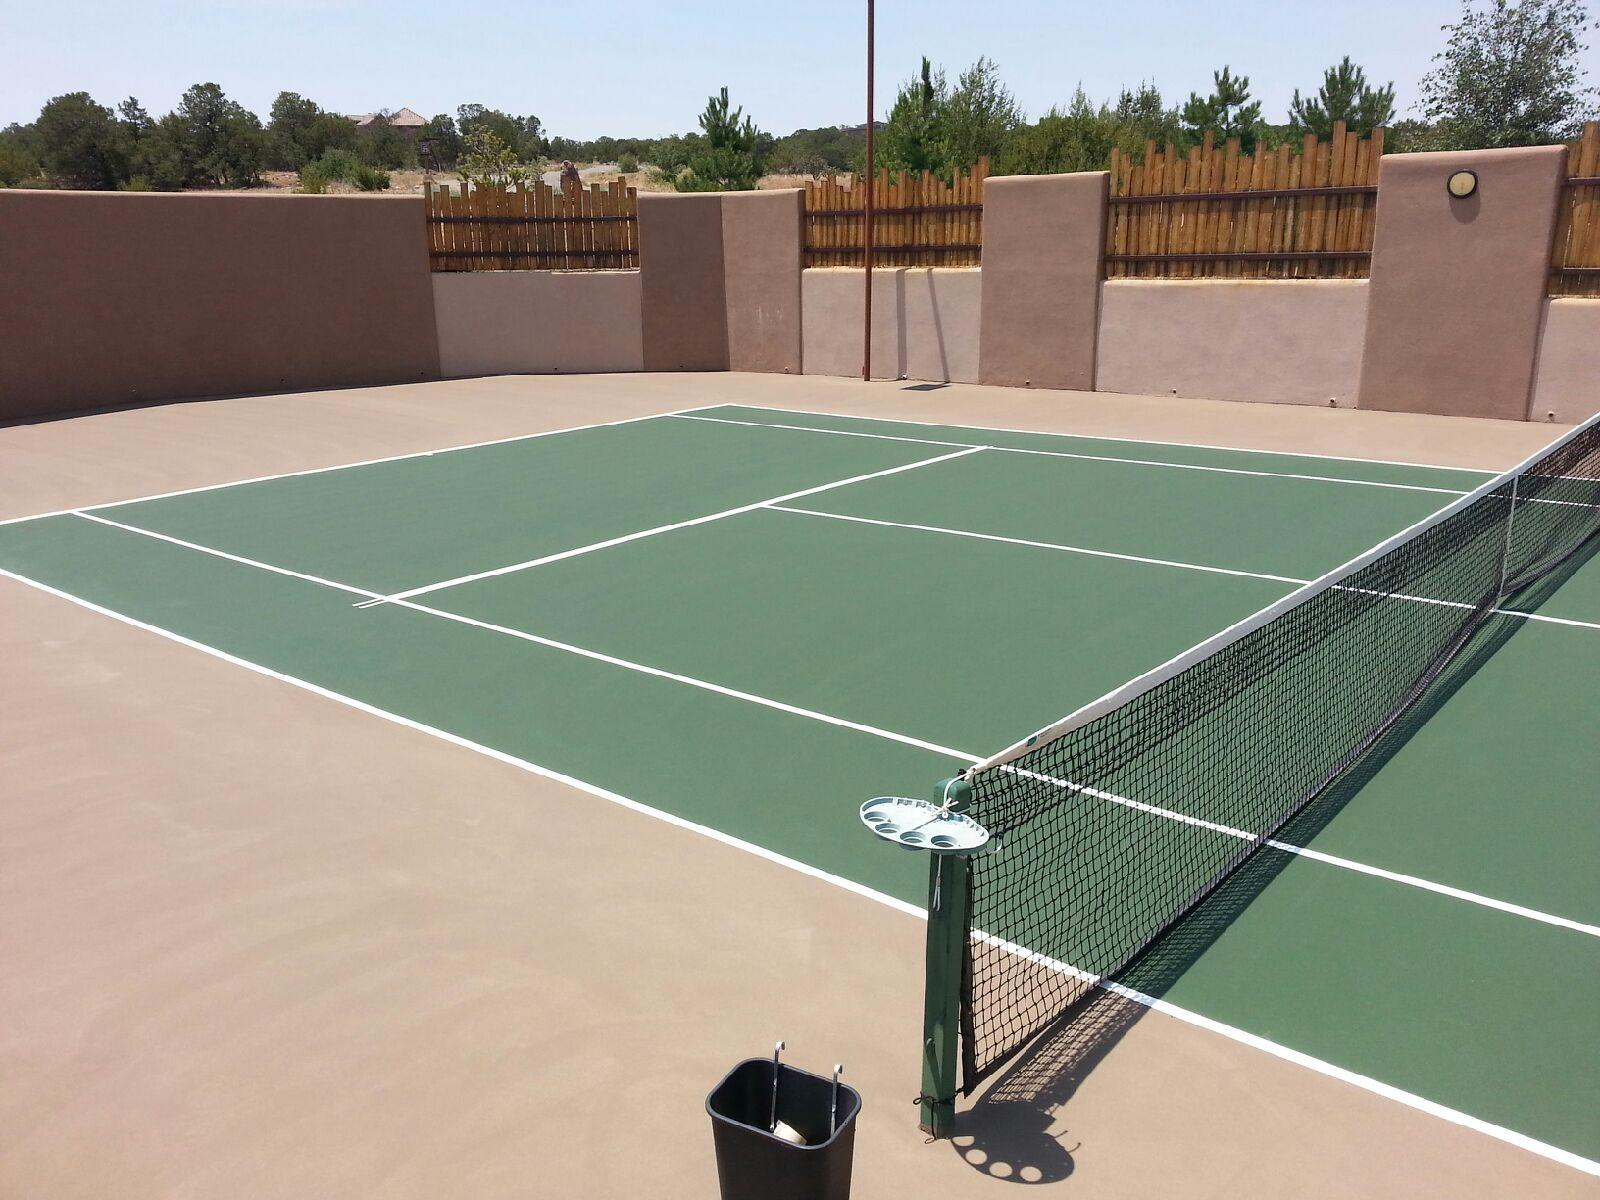 Tennis Court Repair Panhandle Texas